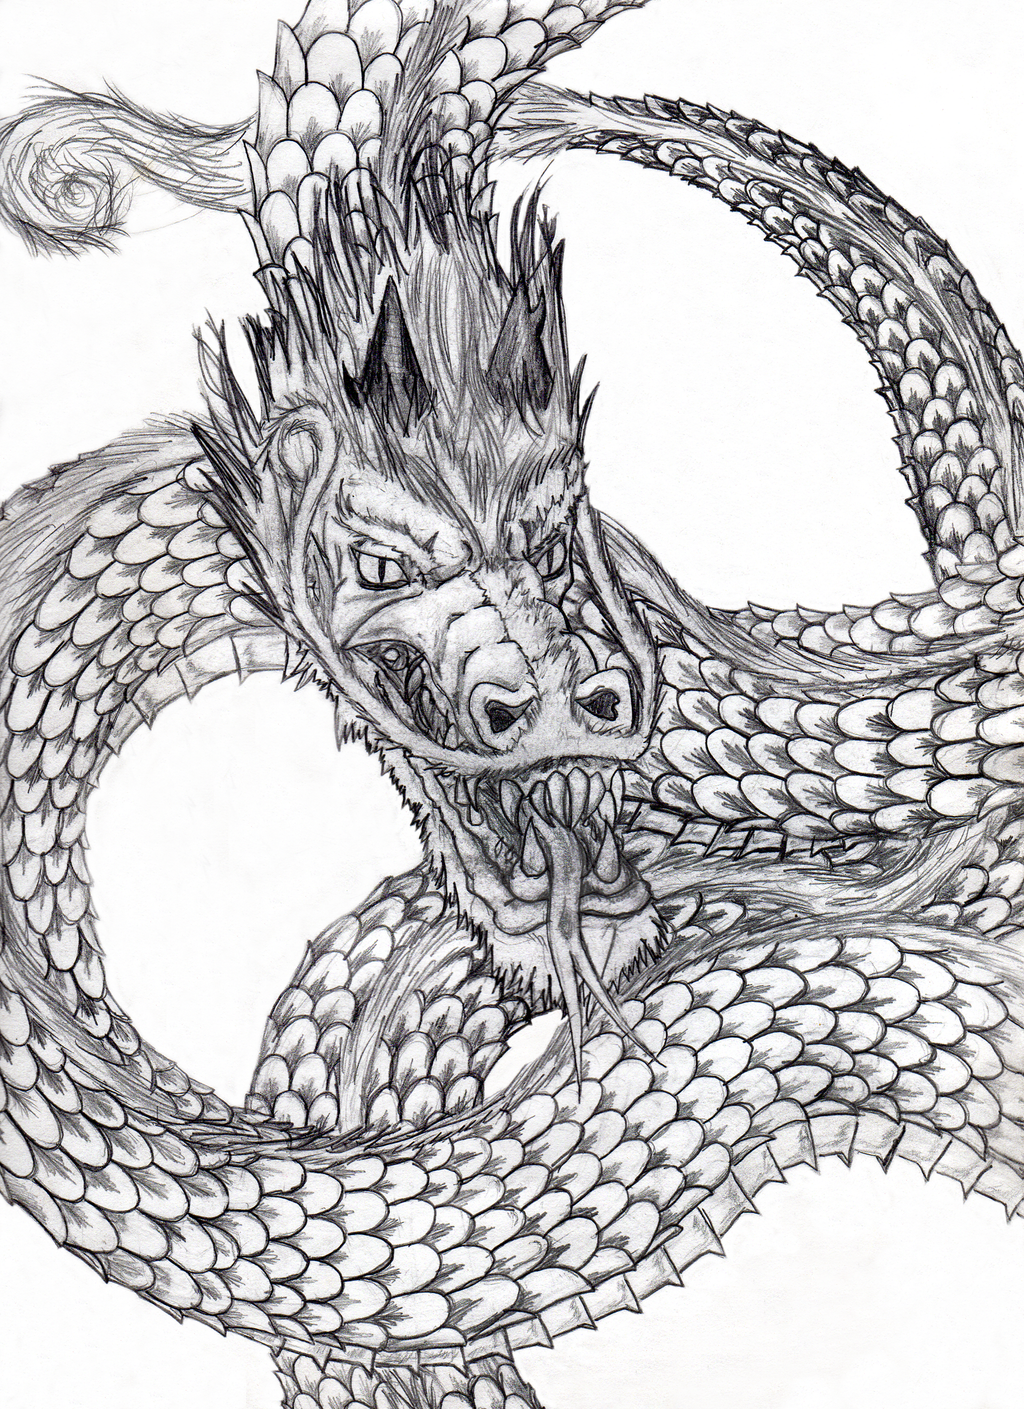 chinese dragon tattoo concept by steinzupancic chinese dragon tattoo concept by steinzupancic